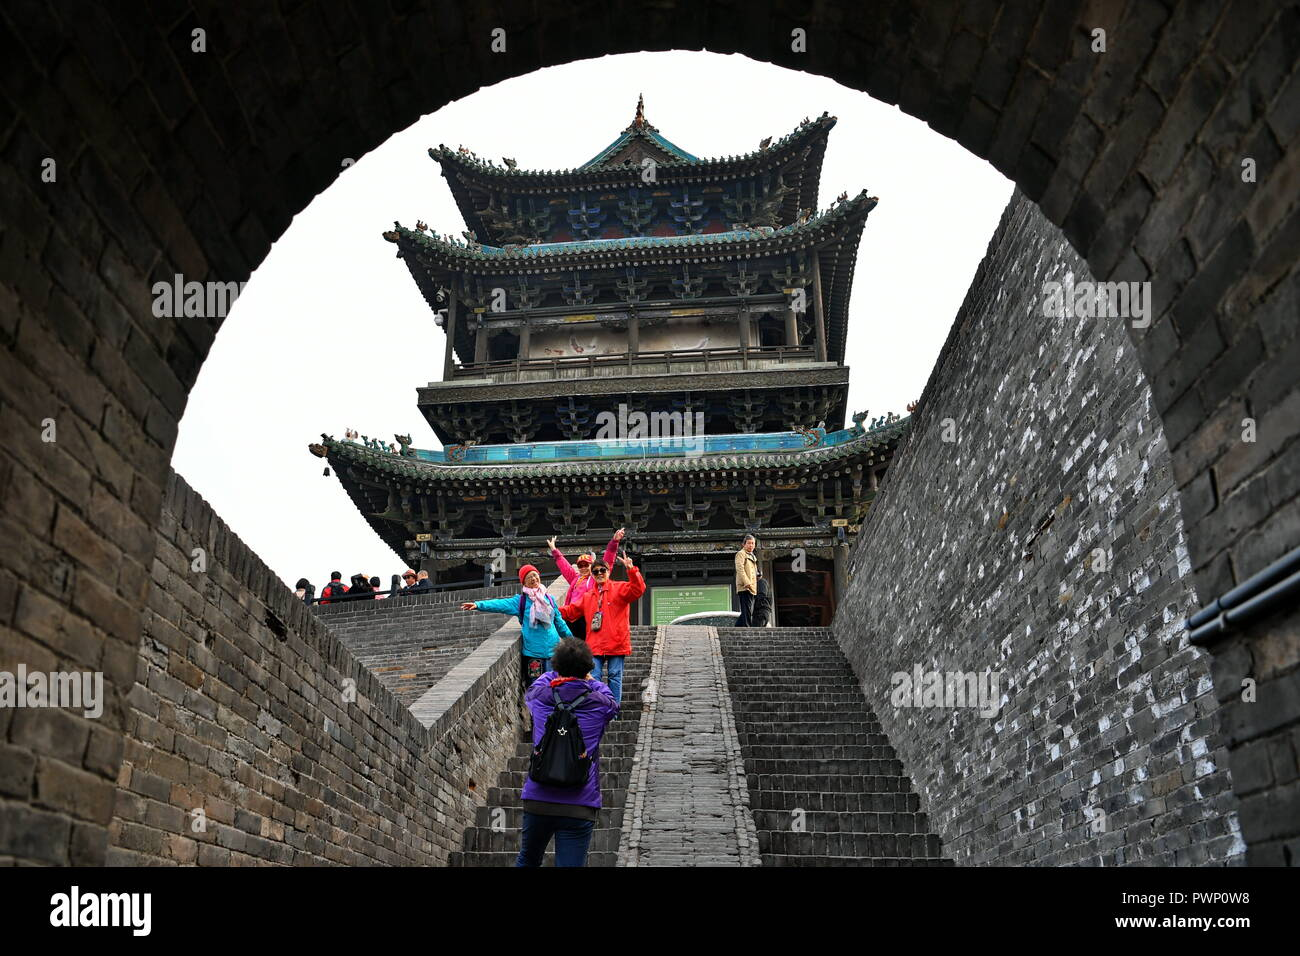 (181017) -- PINGYAO, Oct. 17, 2018 (Xinhua) -- Tourists visit the ancient walled city of Pingyao in Jinzhong, north China's Shanxi Province, on Oct. 17, 2018. The ancient walled city of Pingyao was built in the 14th century, and was named a UNESCO world heritage in 1997, as 'an exceptionally well-preserved example of a traditional Han Chinese city.' The city boomed in the 19th century as China's financial center, as Shanxi merchants expanded their businesses across the country. Now, the well-preserved compounds of these affluent merchants and some emerging modern elements like souvenir shops, - Stock Image